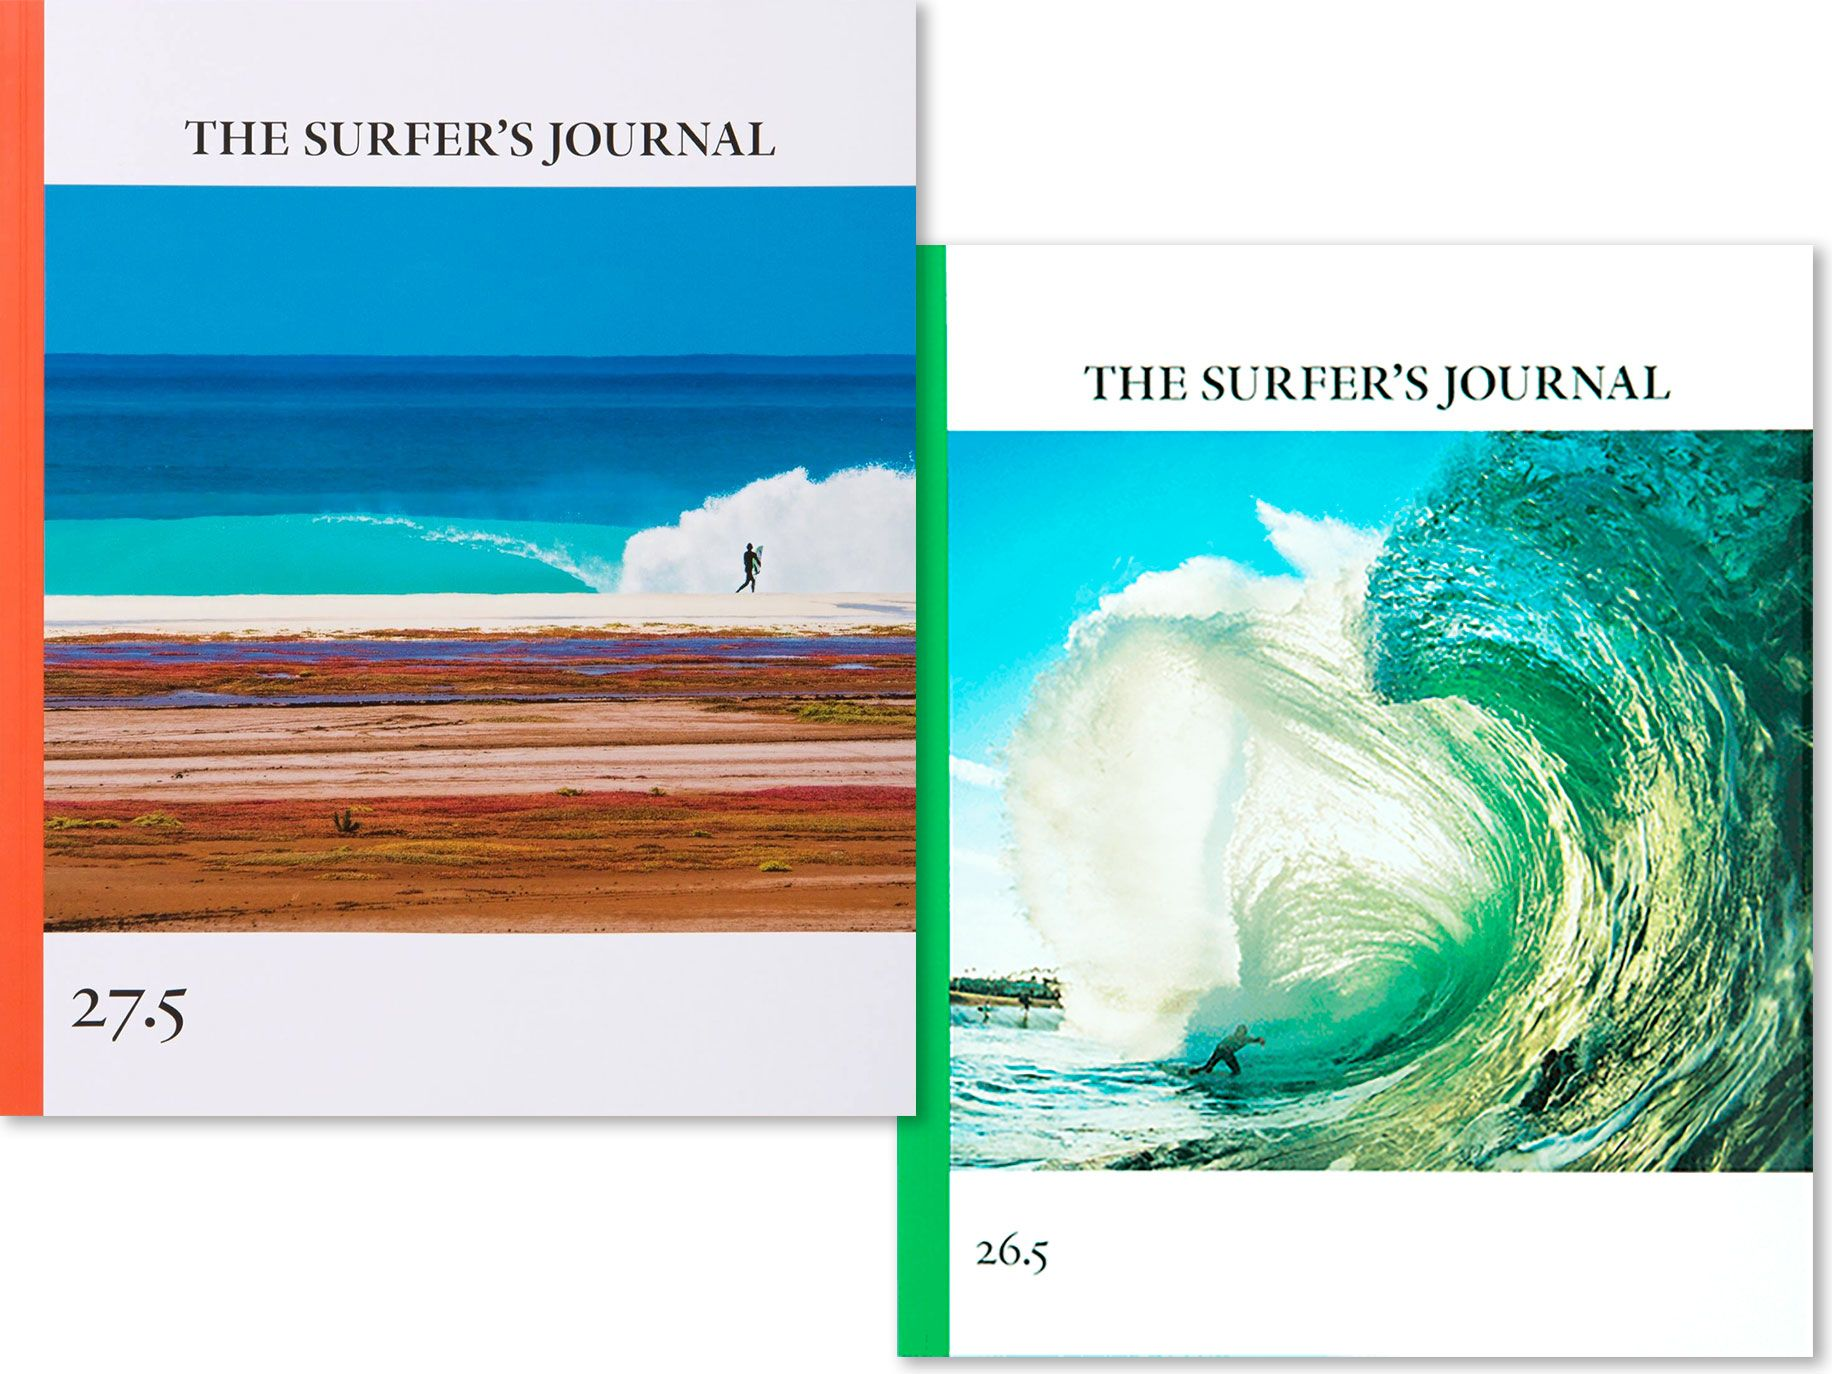 The Surfer's Journal magazine